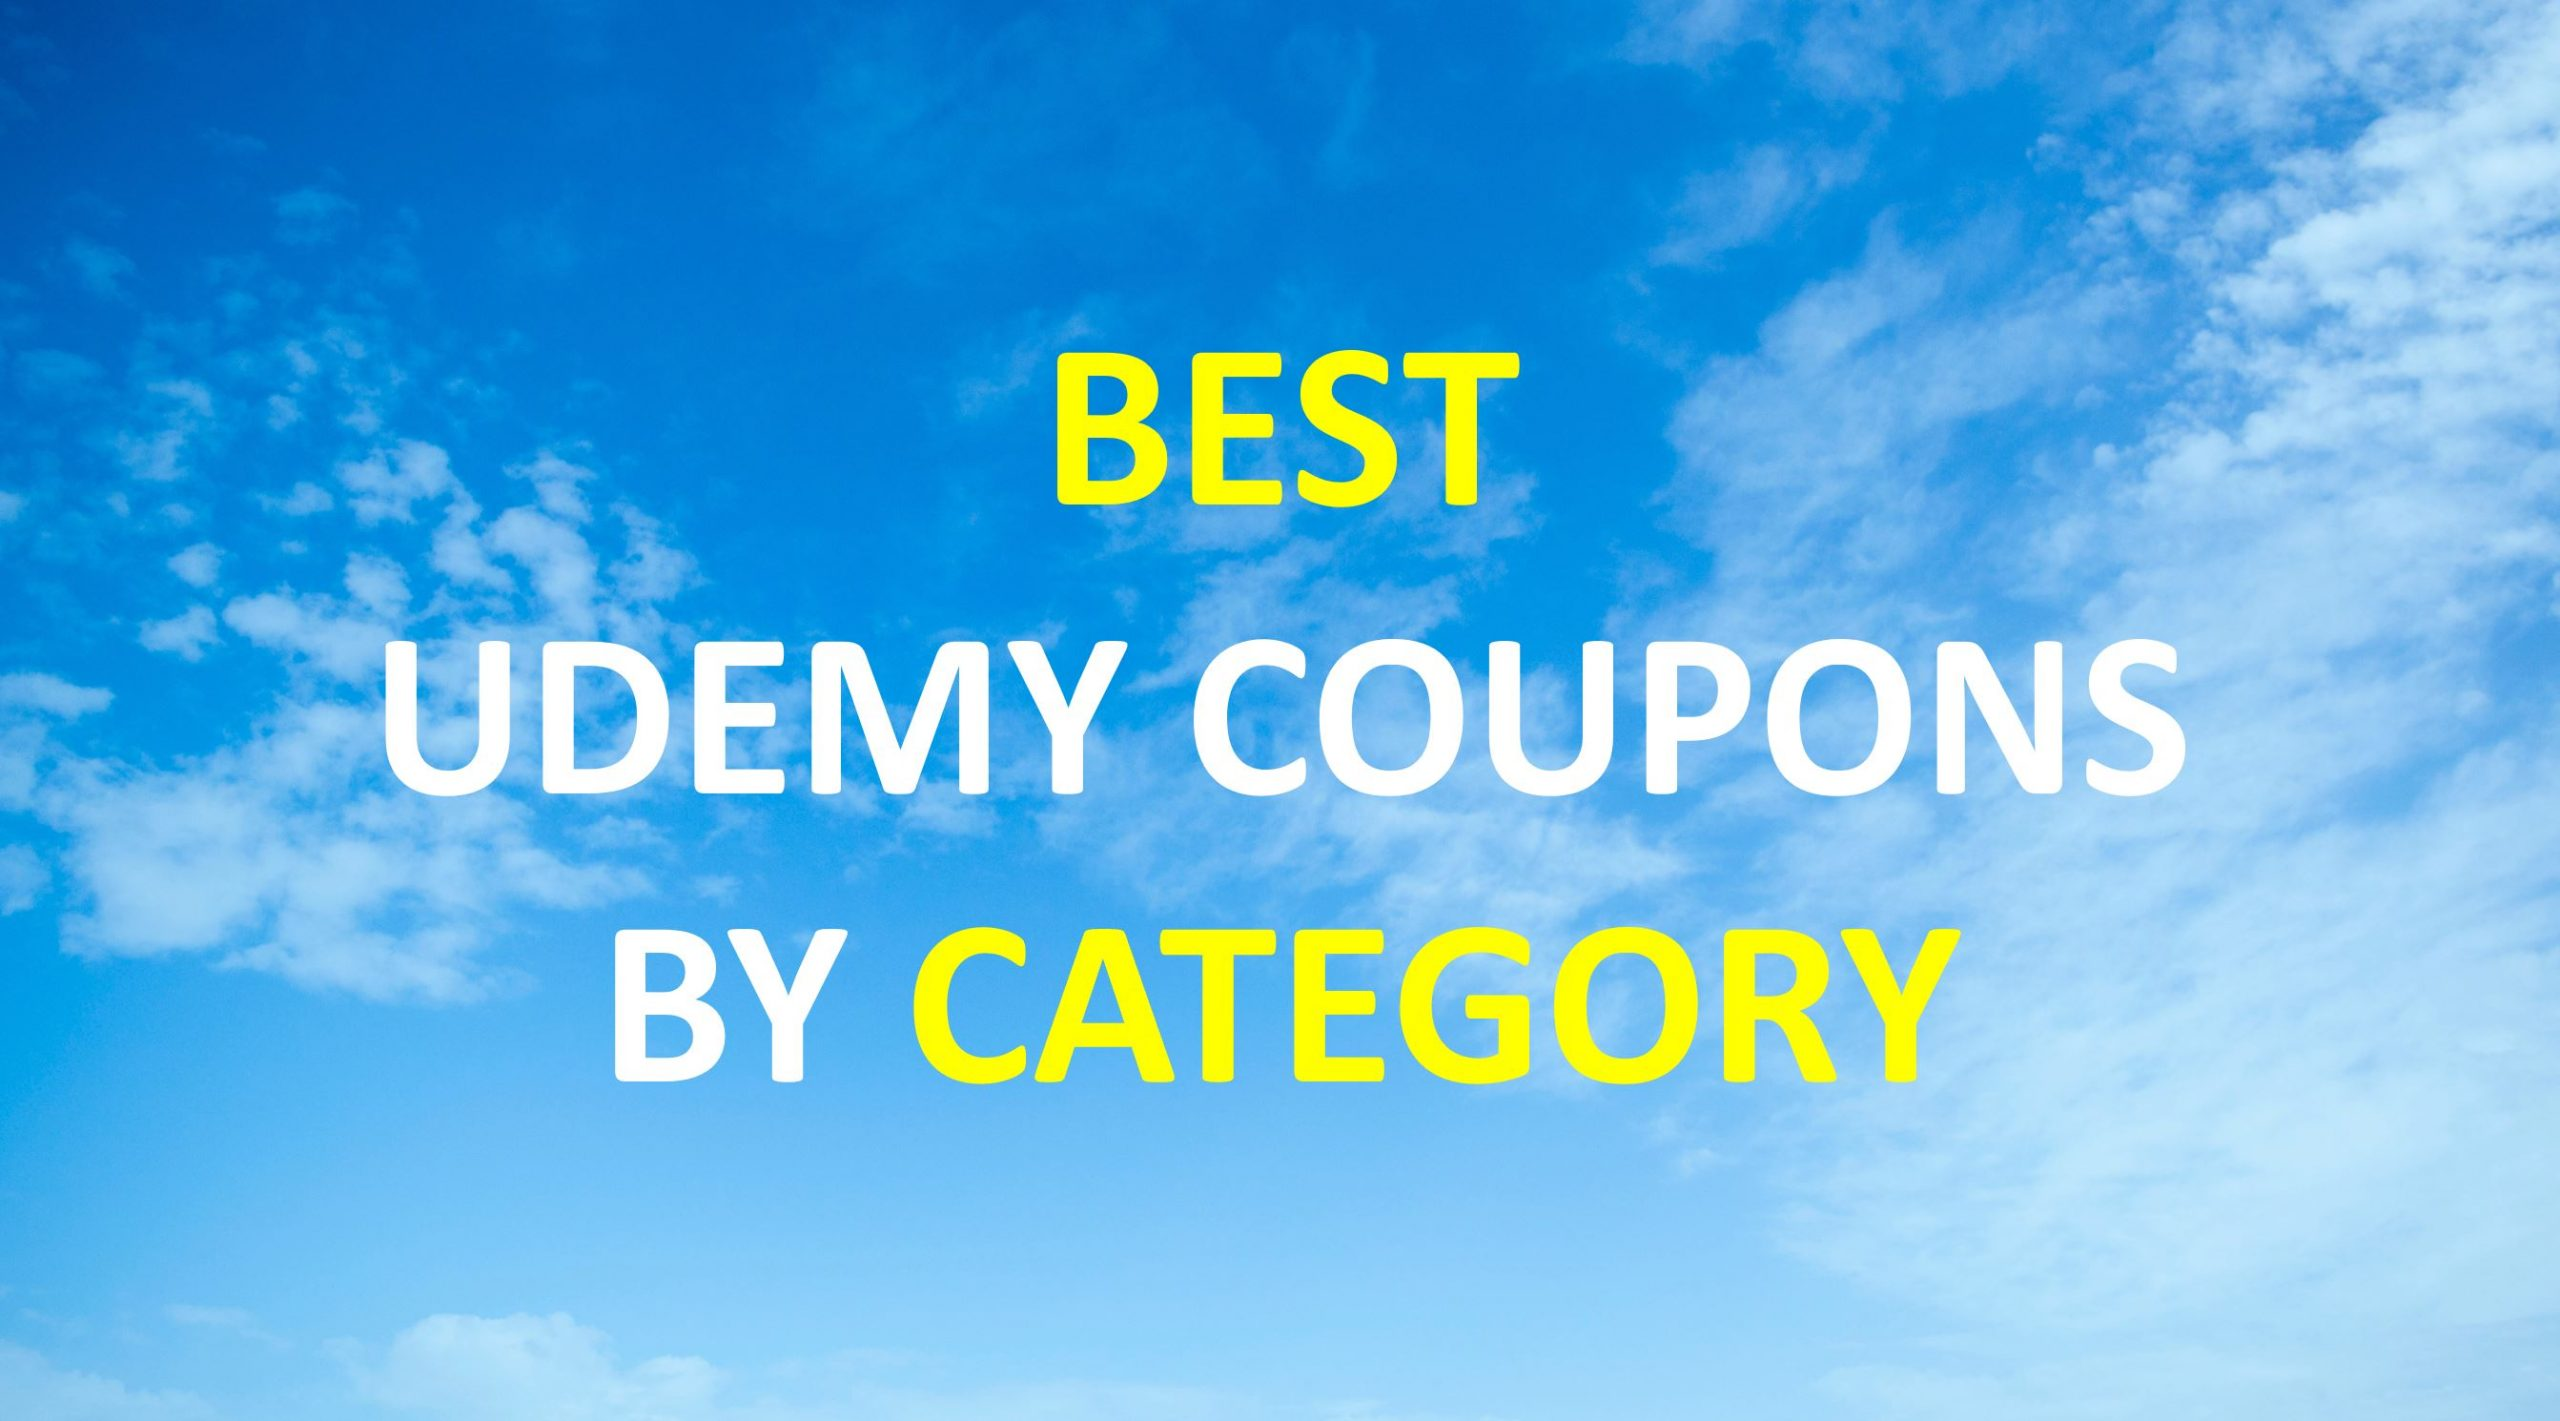 Best Udemy Coupons By Category